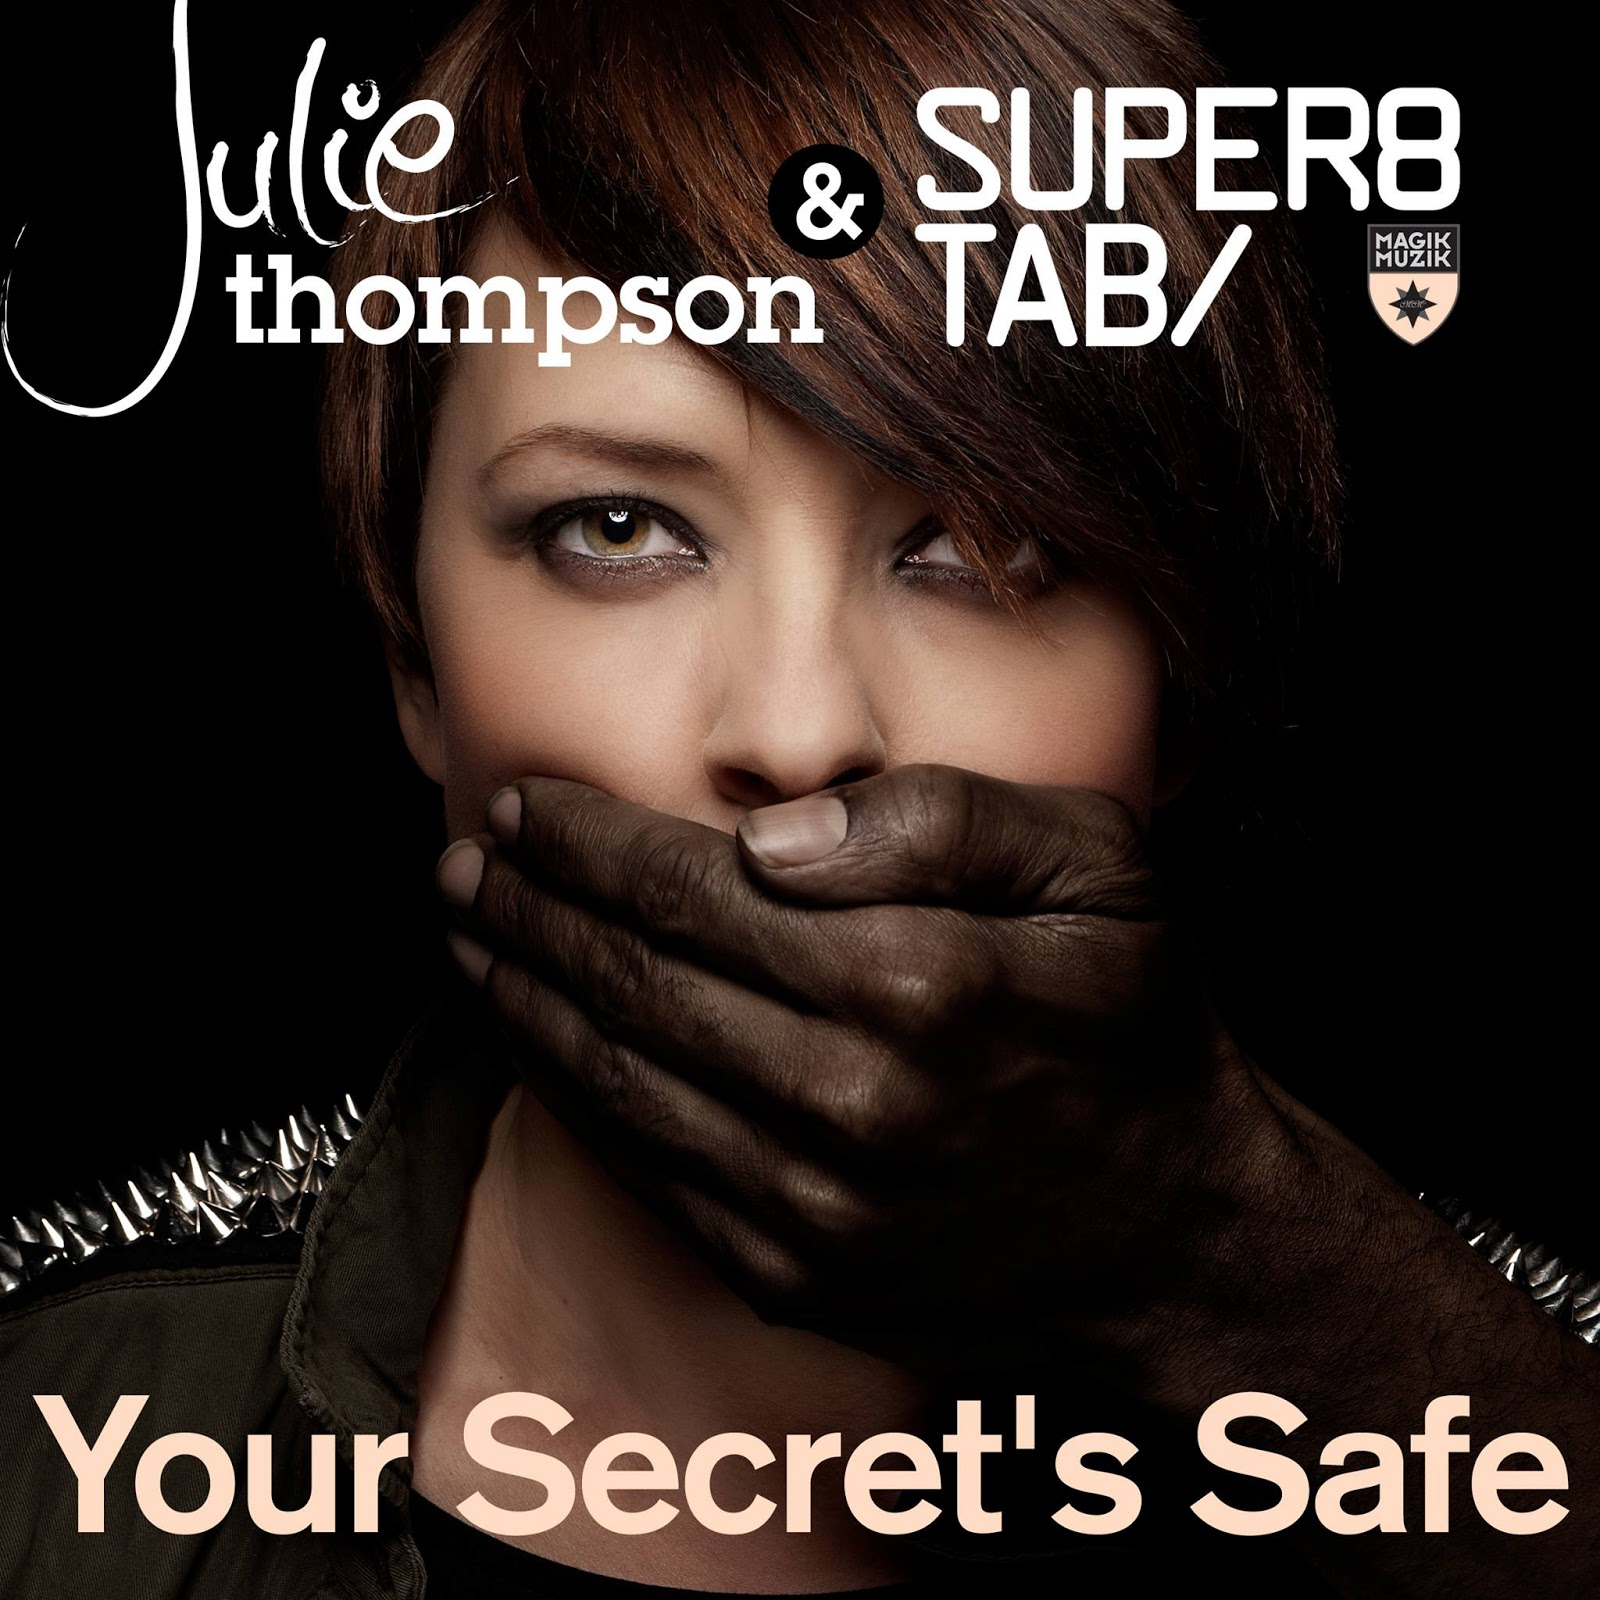 super8 and Tab your secrets safe Super8 & Tab   Your Secrets Safe (feat. Julie Thompson)